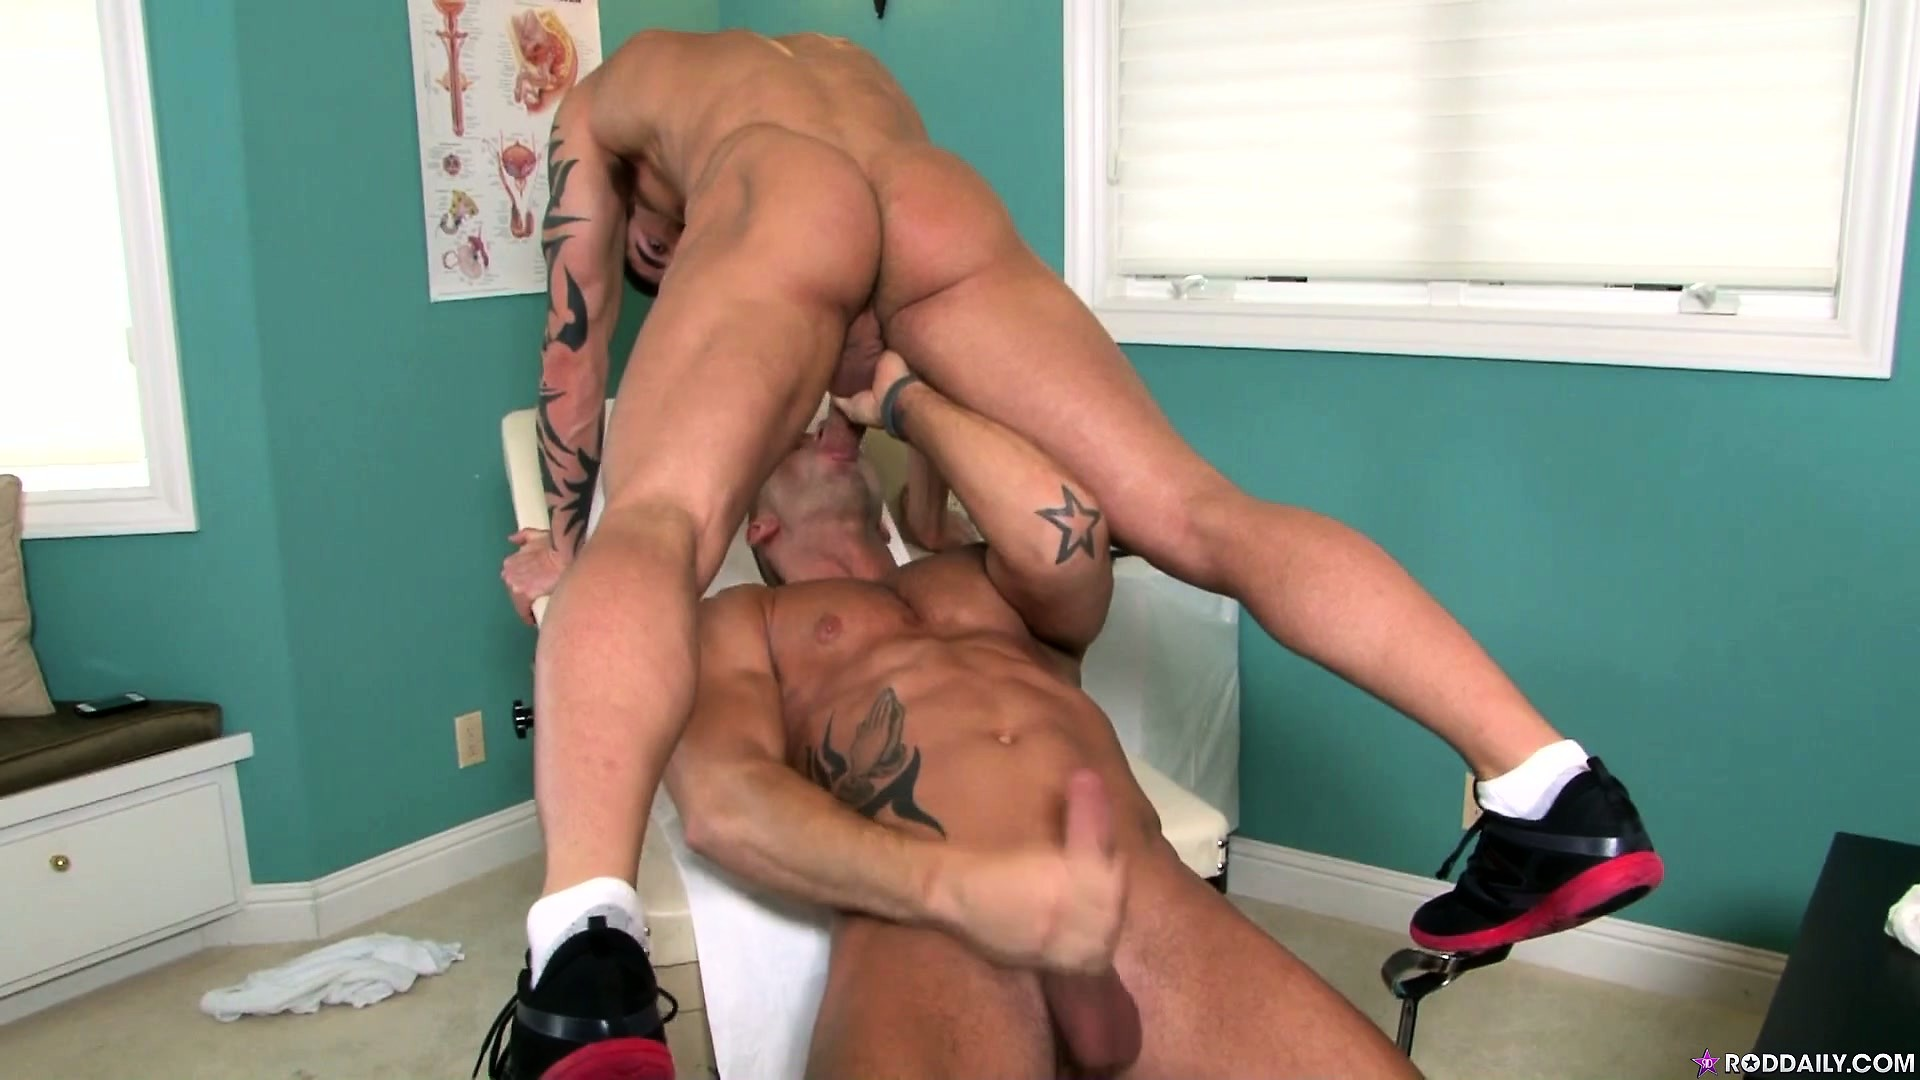 Porn Tube of The Patient Licks The Doctor's Ass And Then Gets His Face Fucked